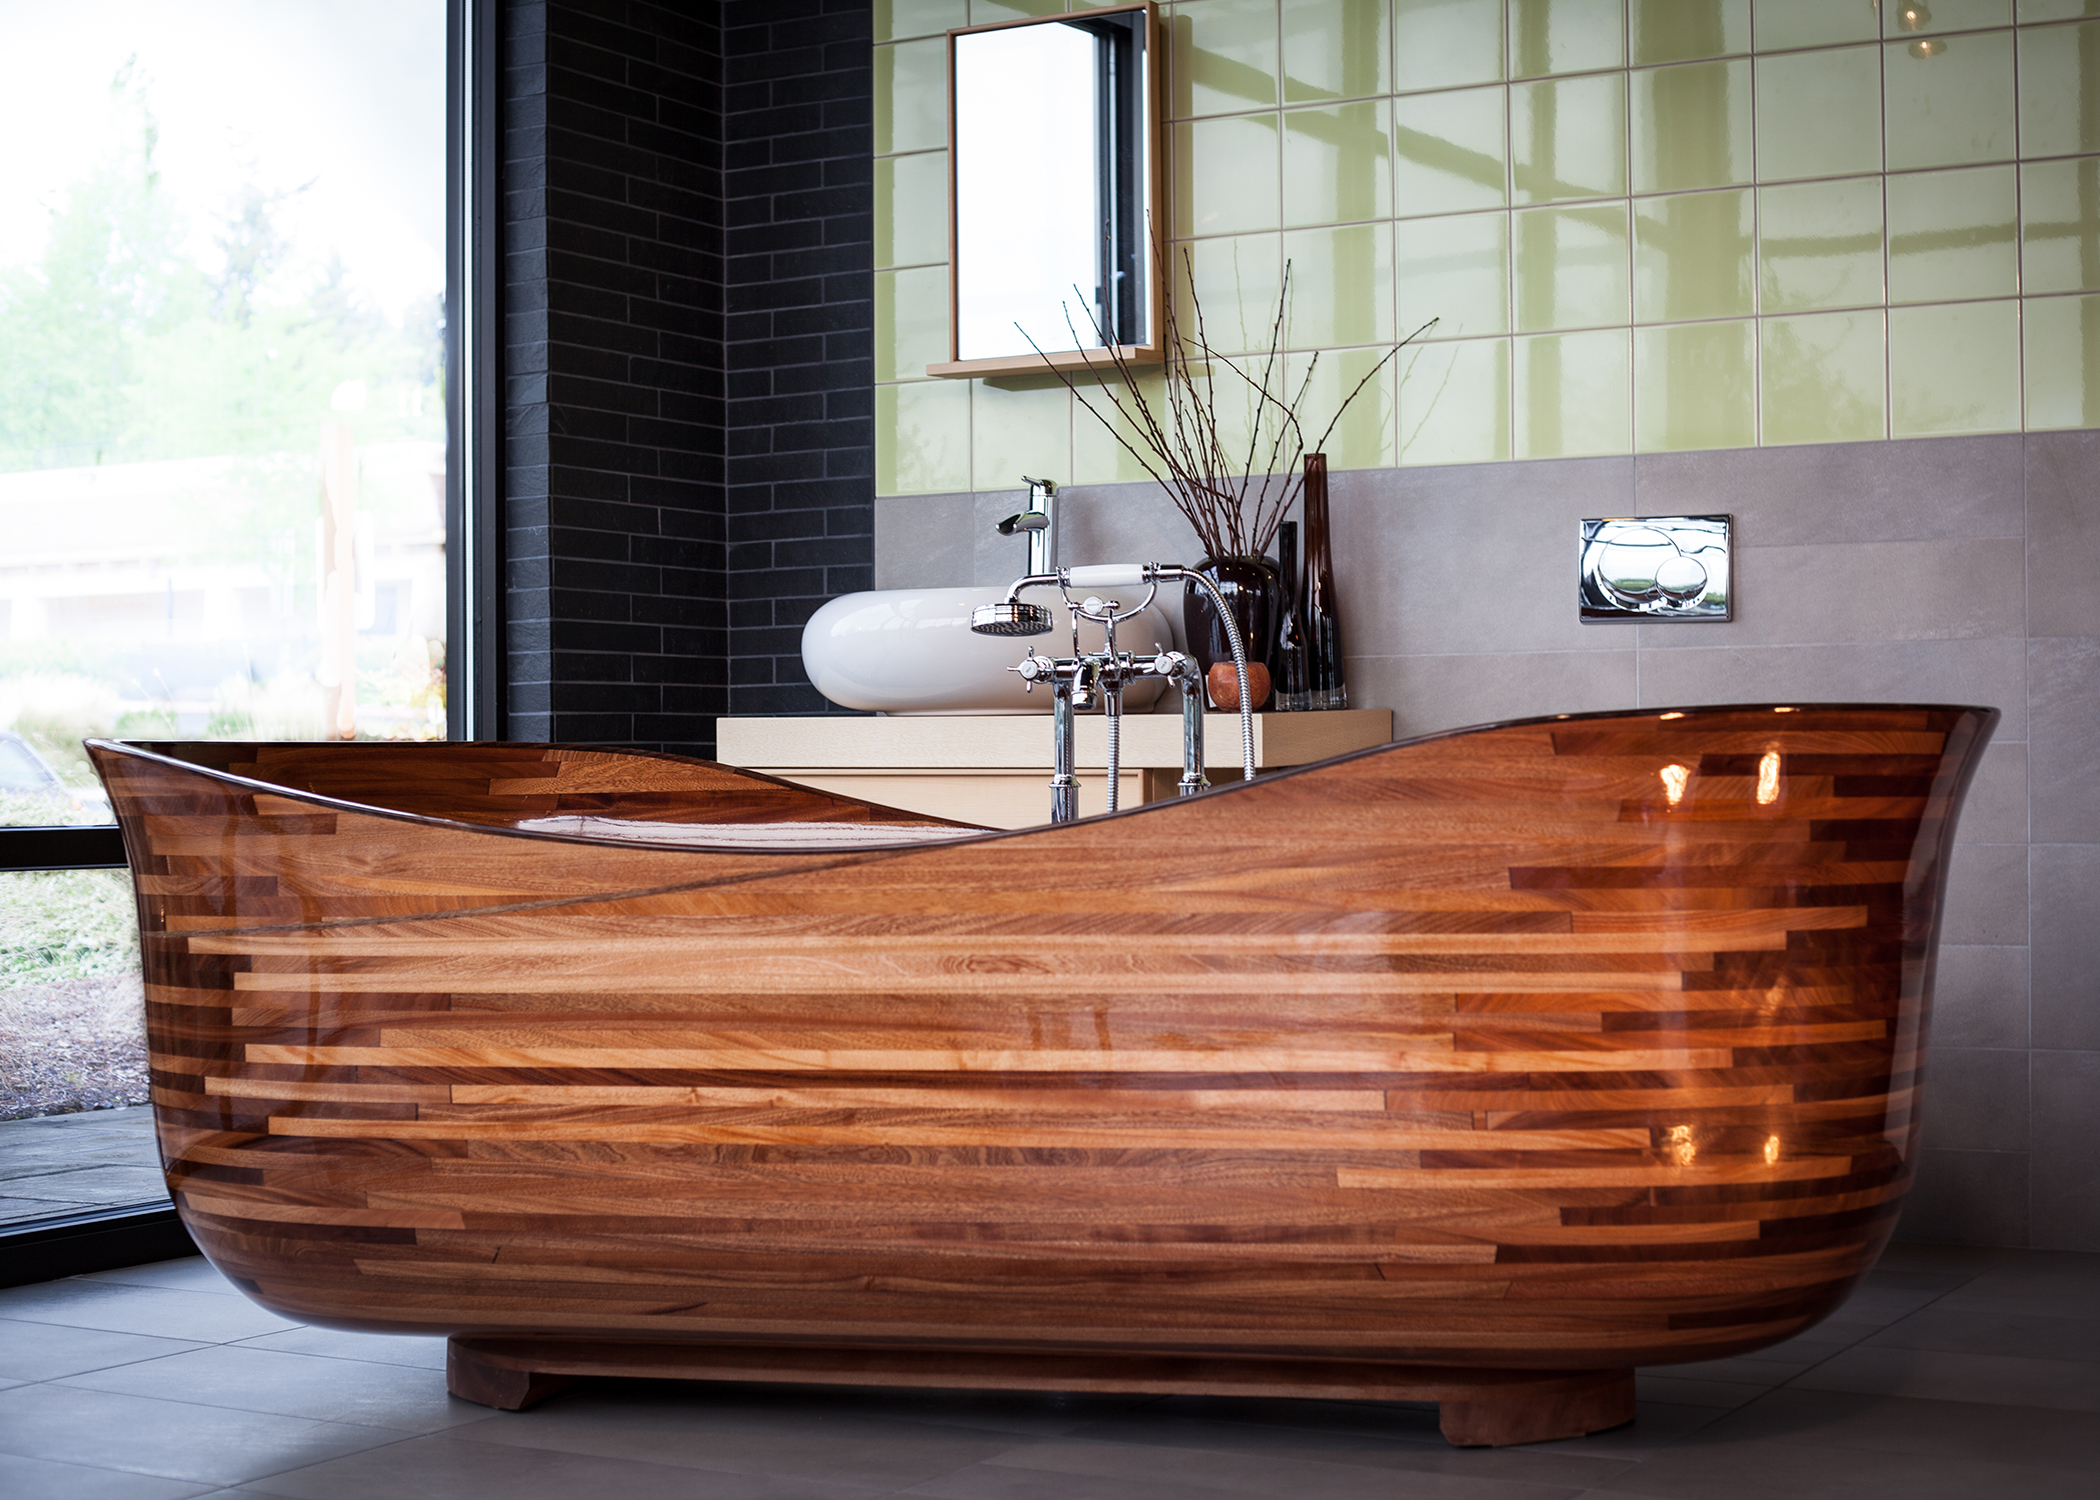 This Seattle Woodworking Shop Produces Finely Crafted Tubs